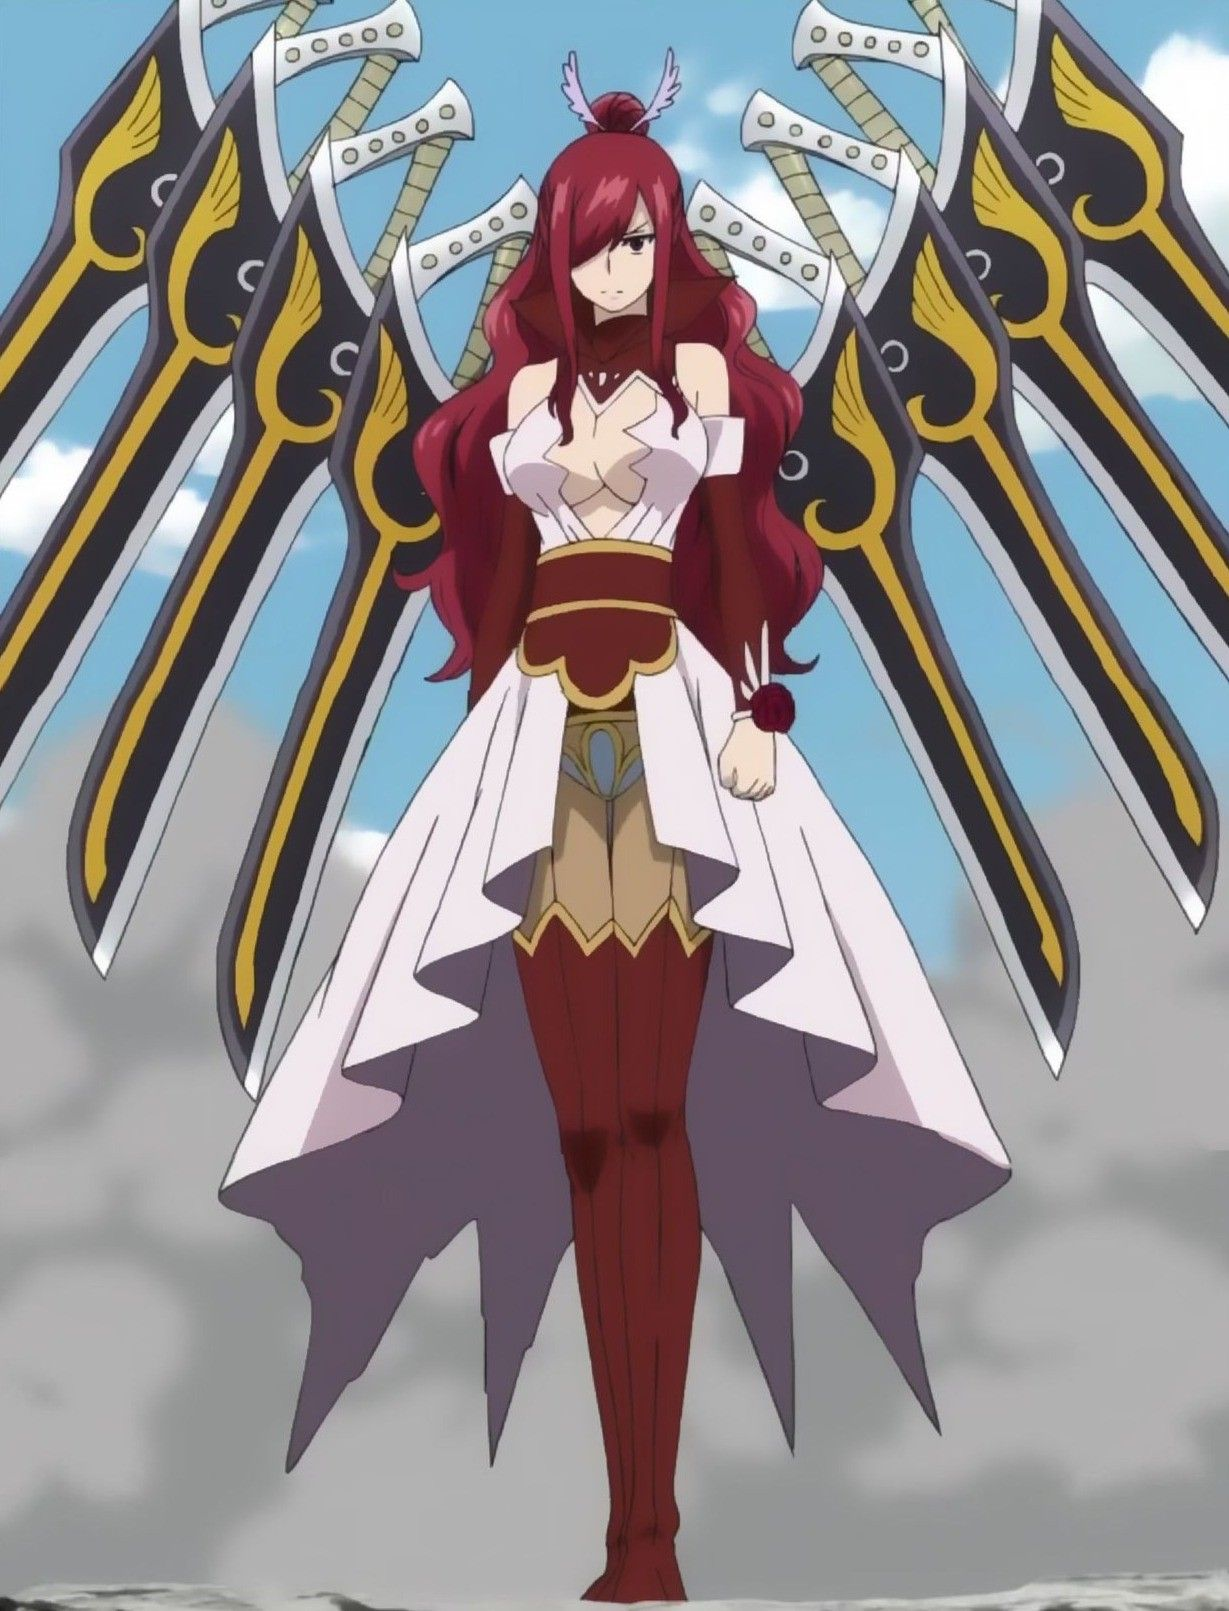 Fairy Tail Fairy Tail Anime Fairy Tail Erza Scarlet Fairy Tail Girls